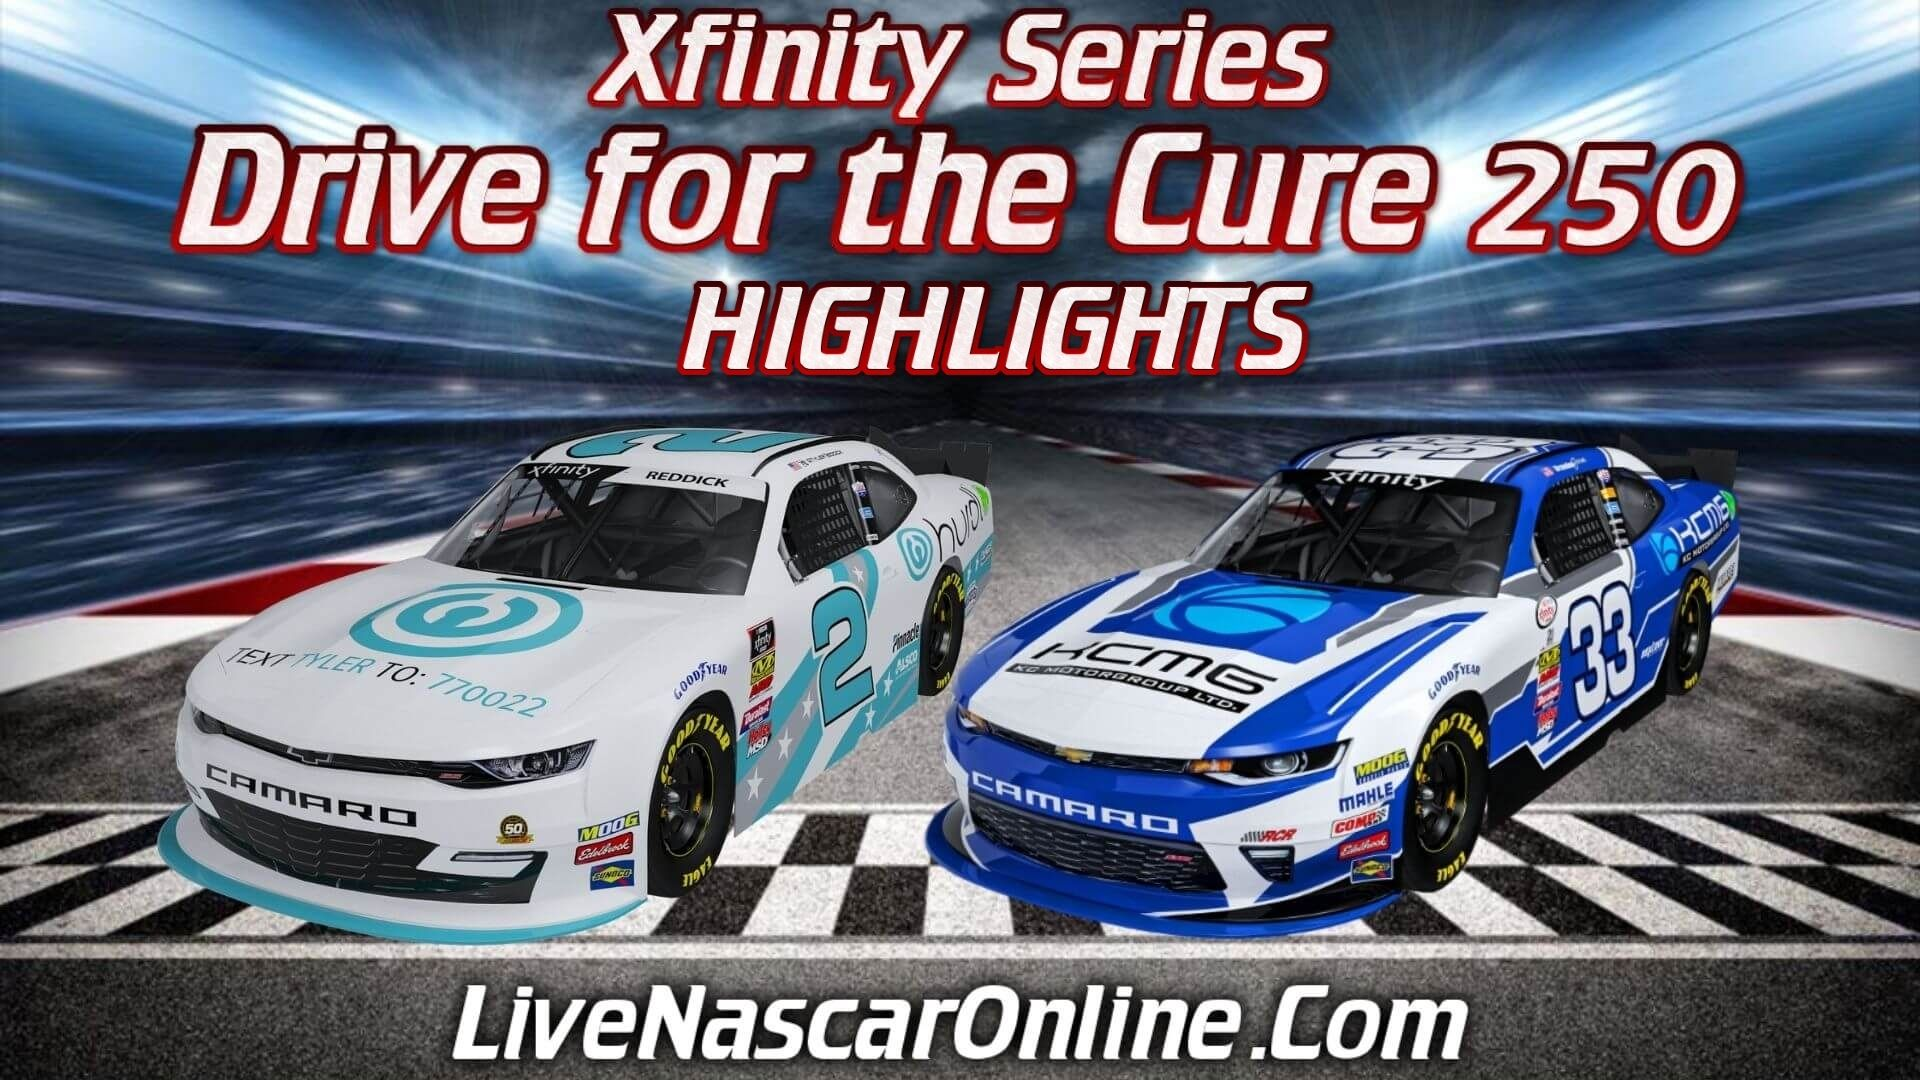 Drive for the Cure 250 Highlights 2020 Nascar Xfinity Series